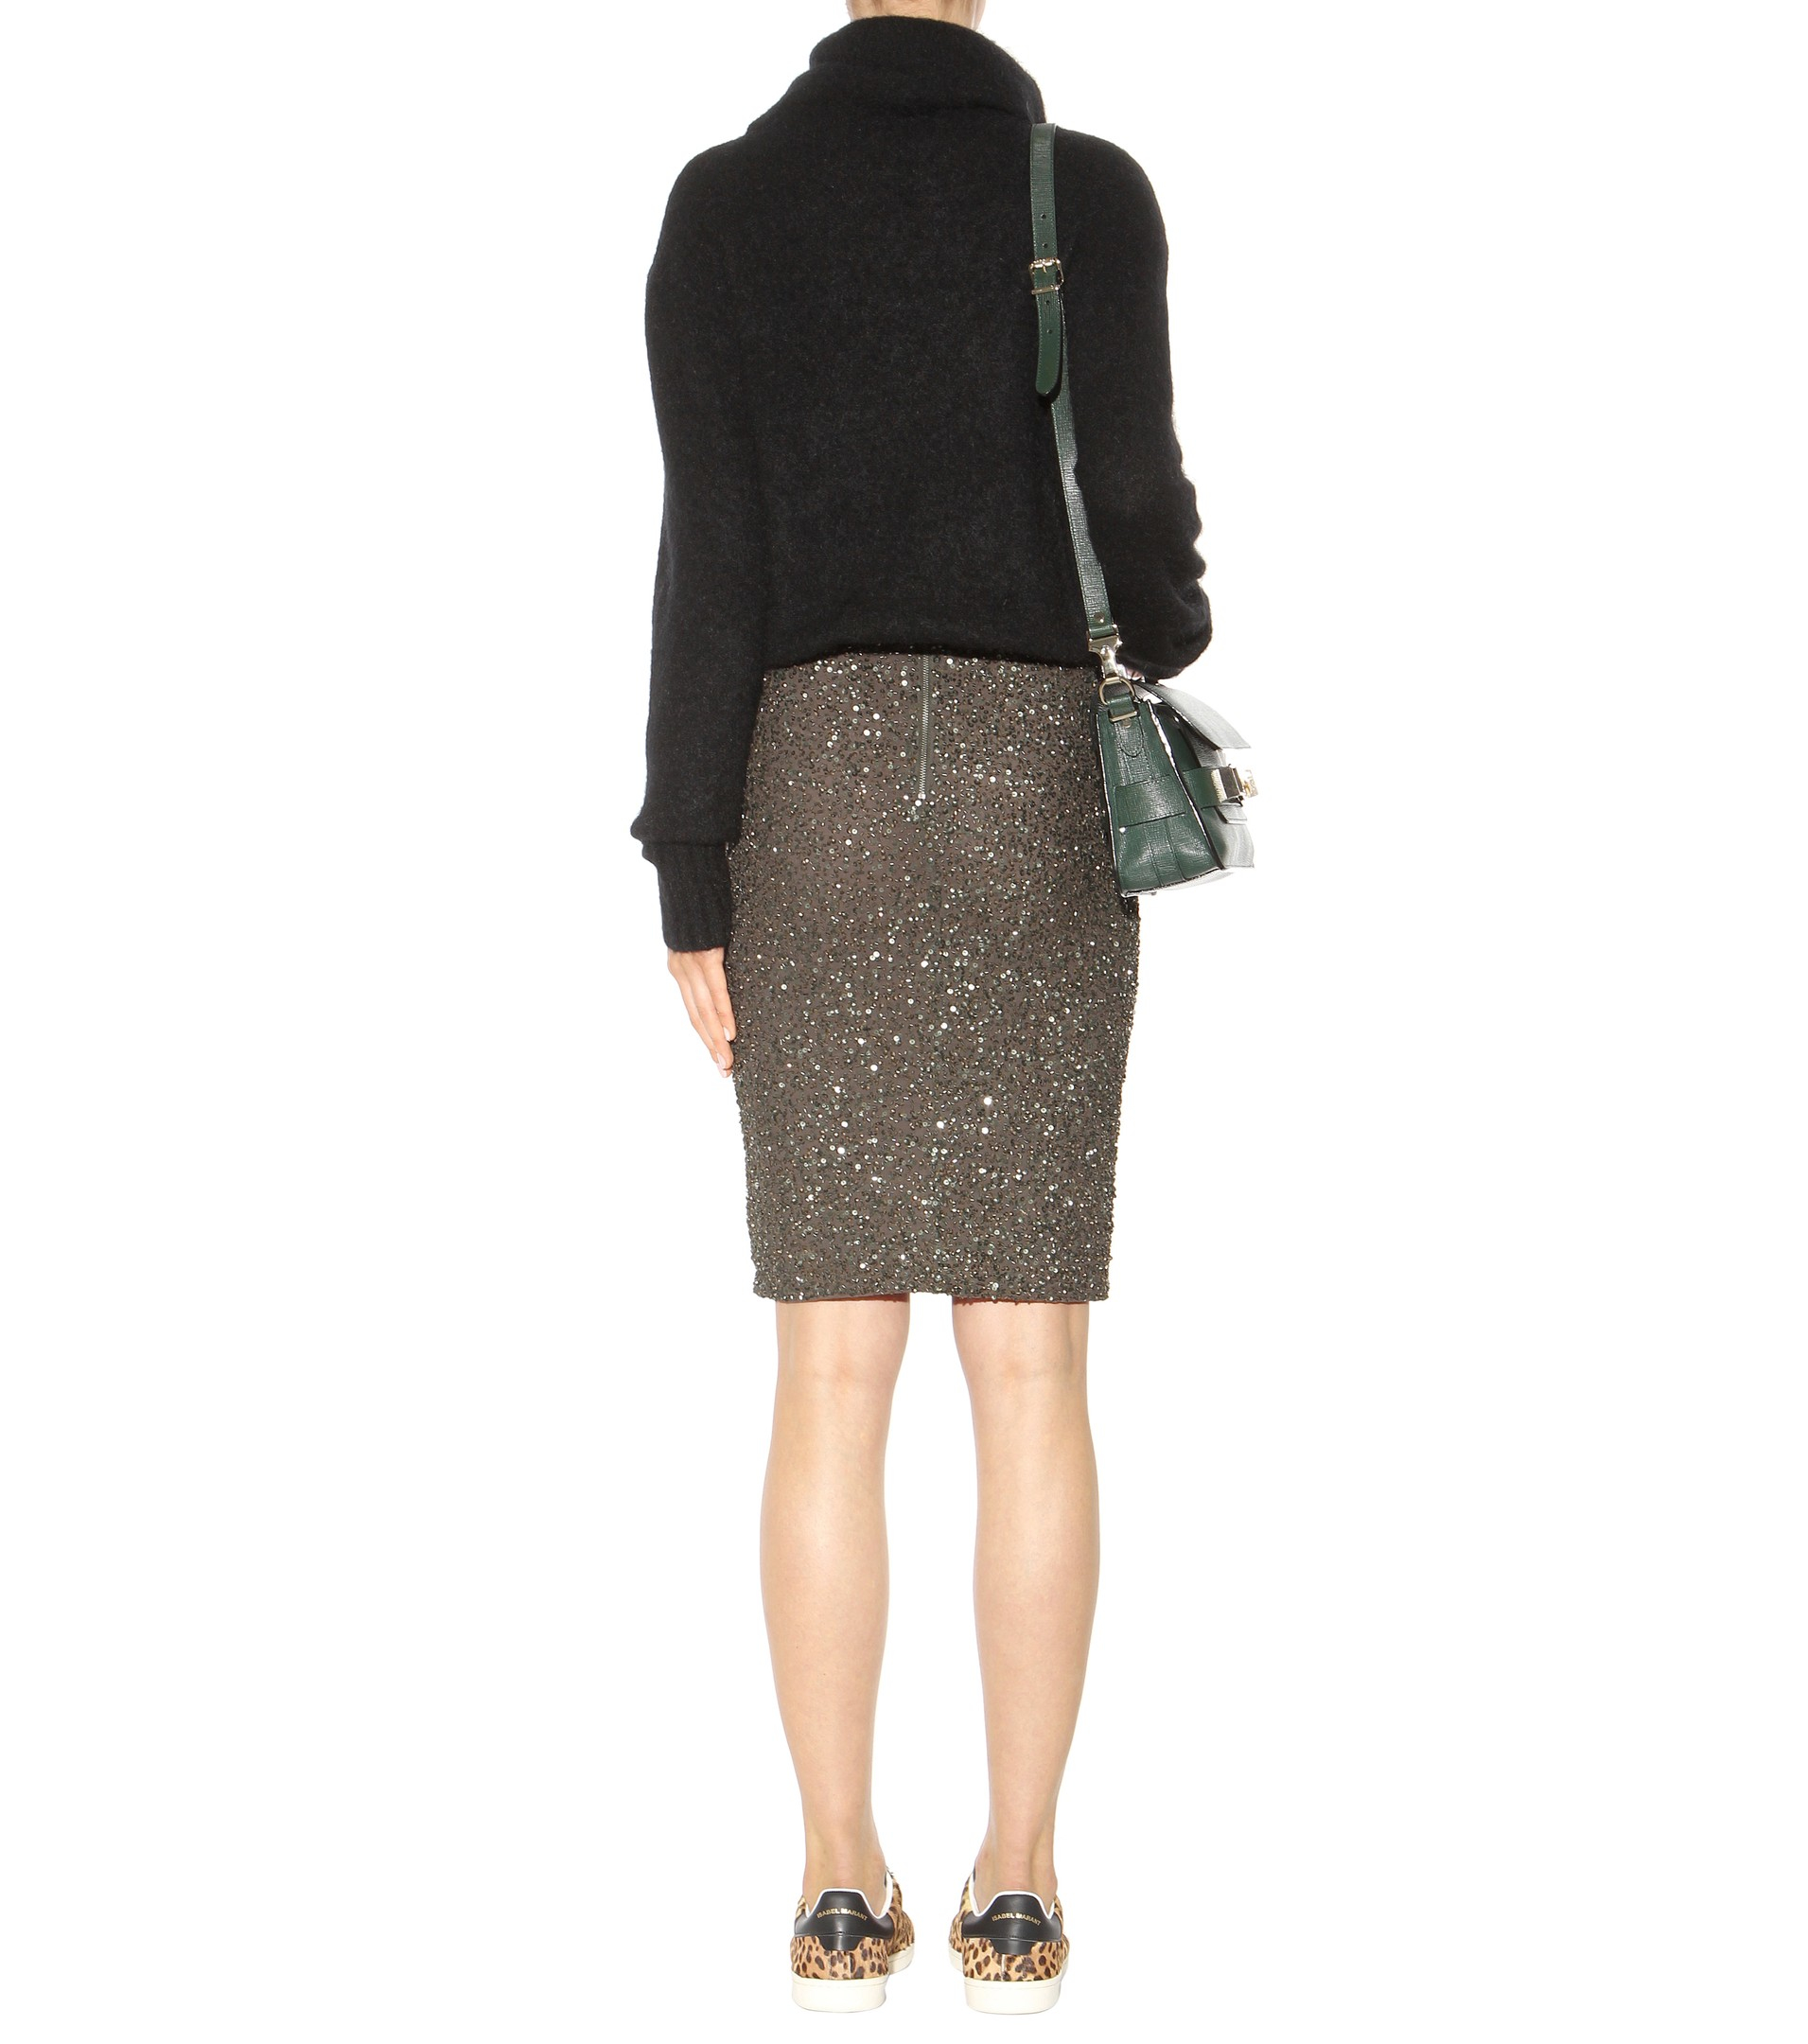 0a64d3c5f Alice + Olivia Ramos Embellished Pencil Skirt - Lyst